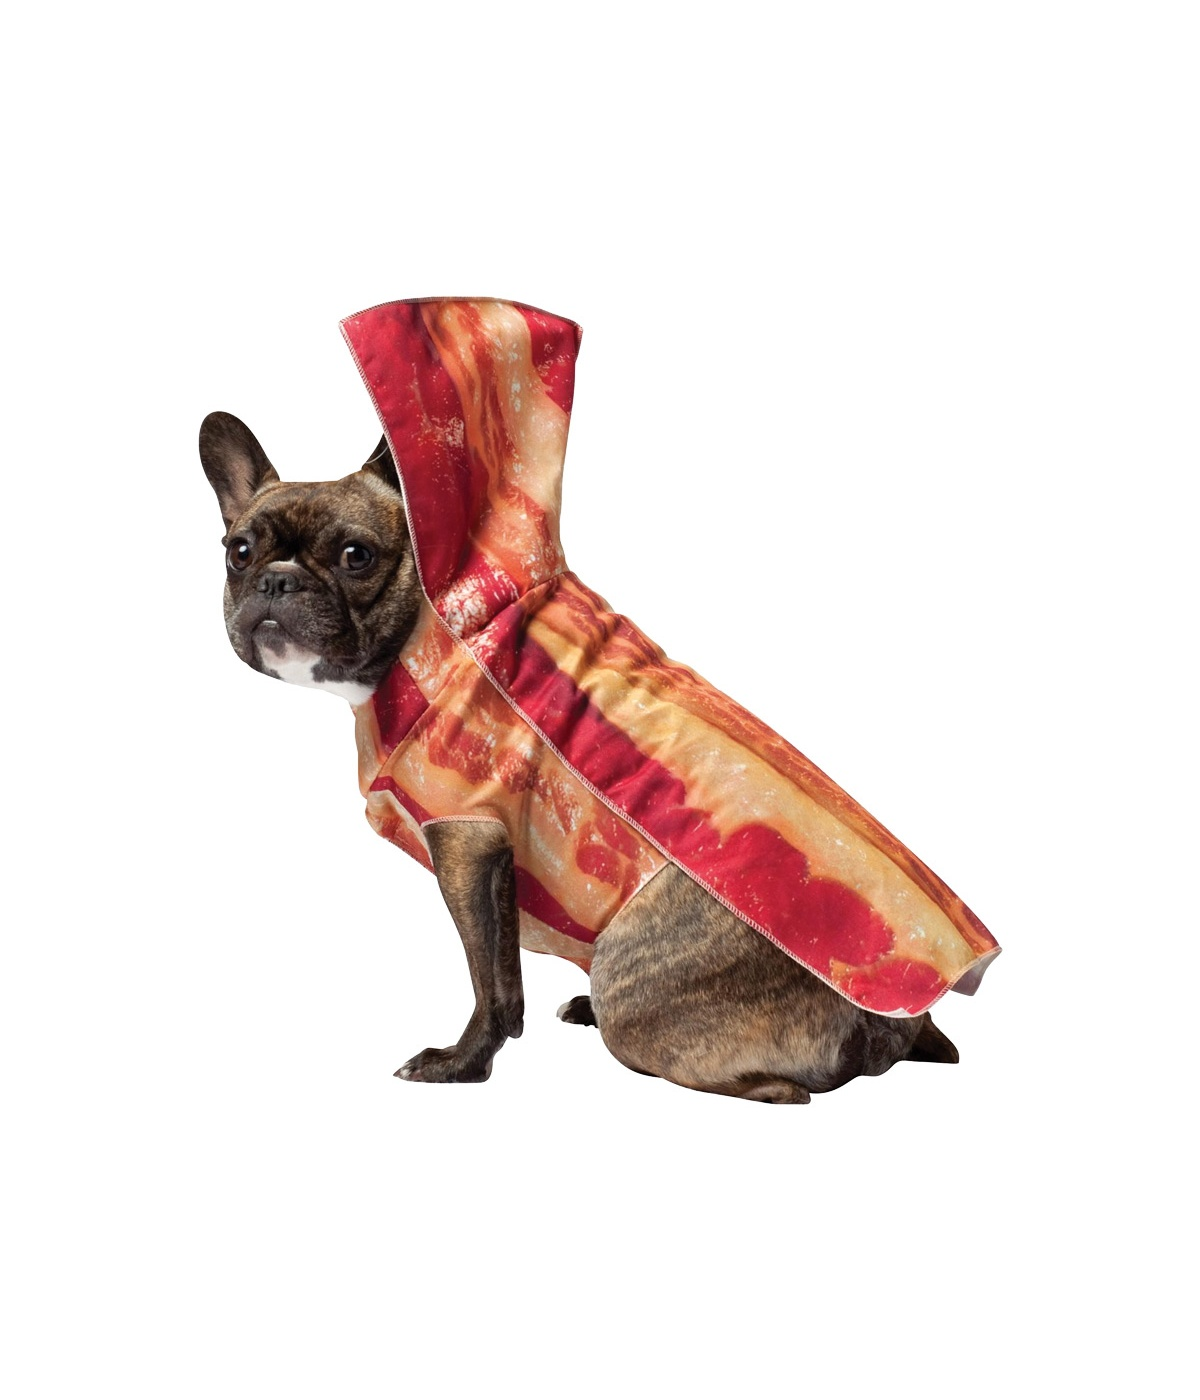 Sizzling Bacon Dog Costume